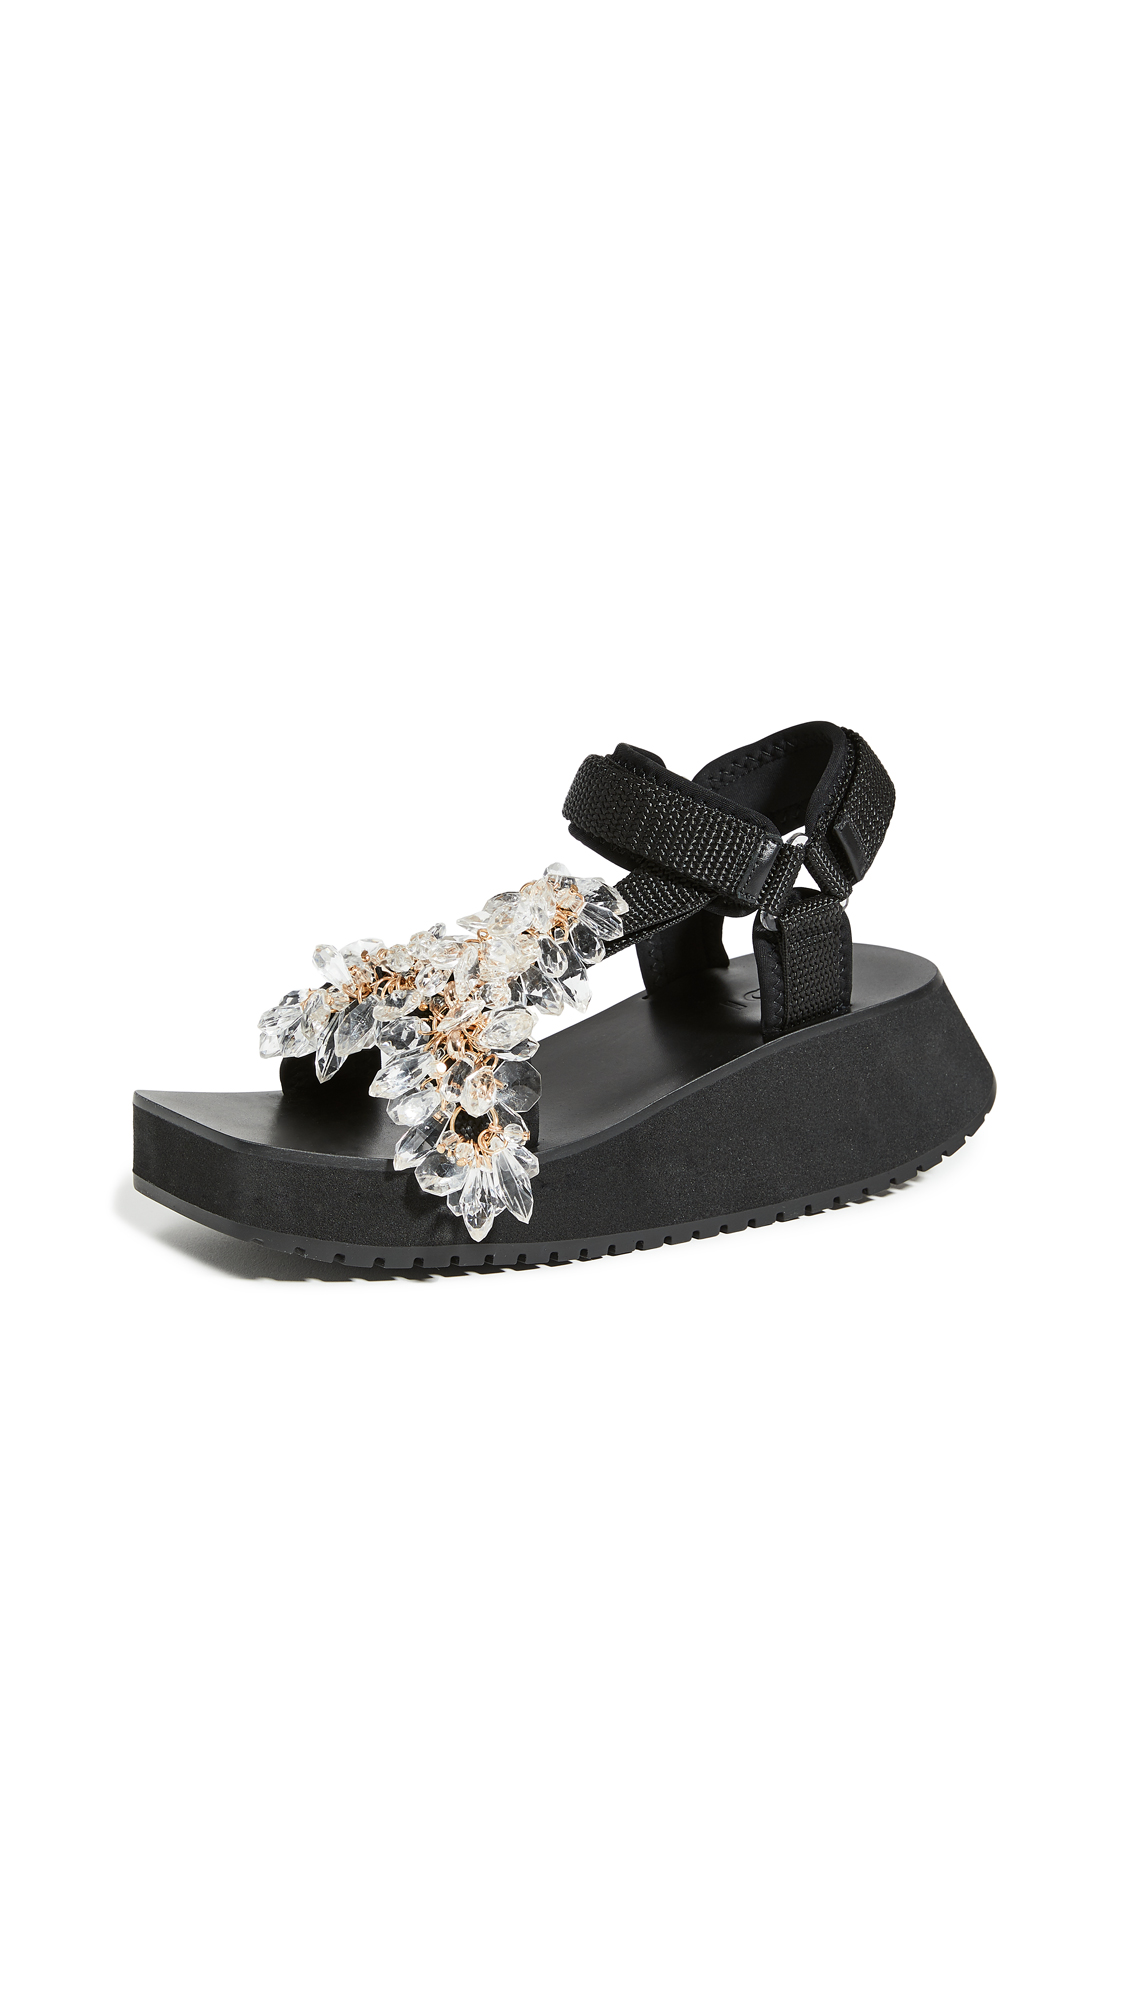 Tibi Ping Jeweled Sandals – 30% Off Sale